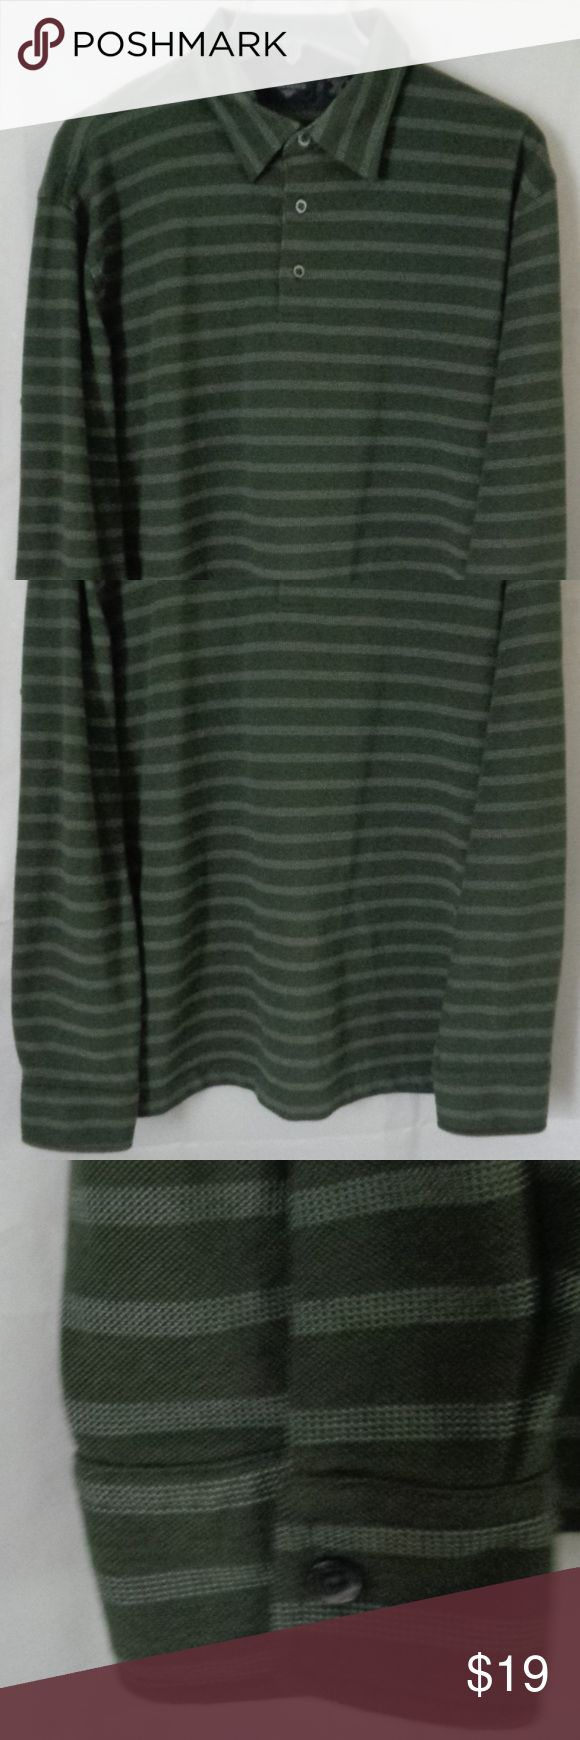 "Dockers Green Striped Polo Shirt Large #34 Dockers Green Striped Shirt   Long Sleeve  Large   Armpit to Armpit 25""  Shoulder to Hem 29 1/2""  Hem 24 1/2""  Sleeve Shoulder to cuff edge 24 1/2""  Excellent Condition! See pictures with zoom  #34 Dockers Shirts Polos"